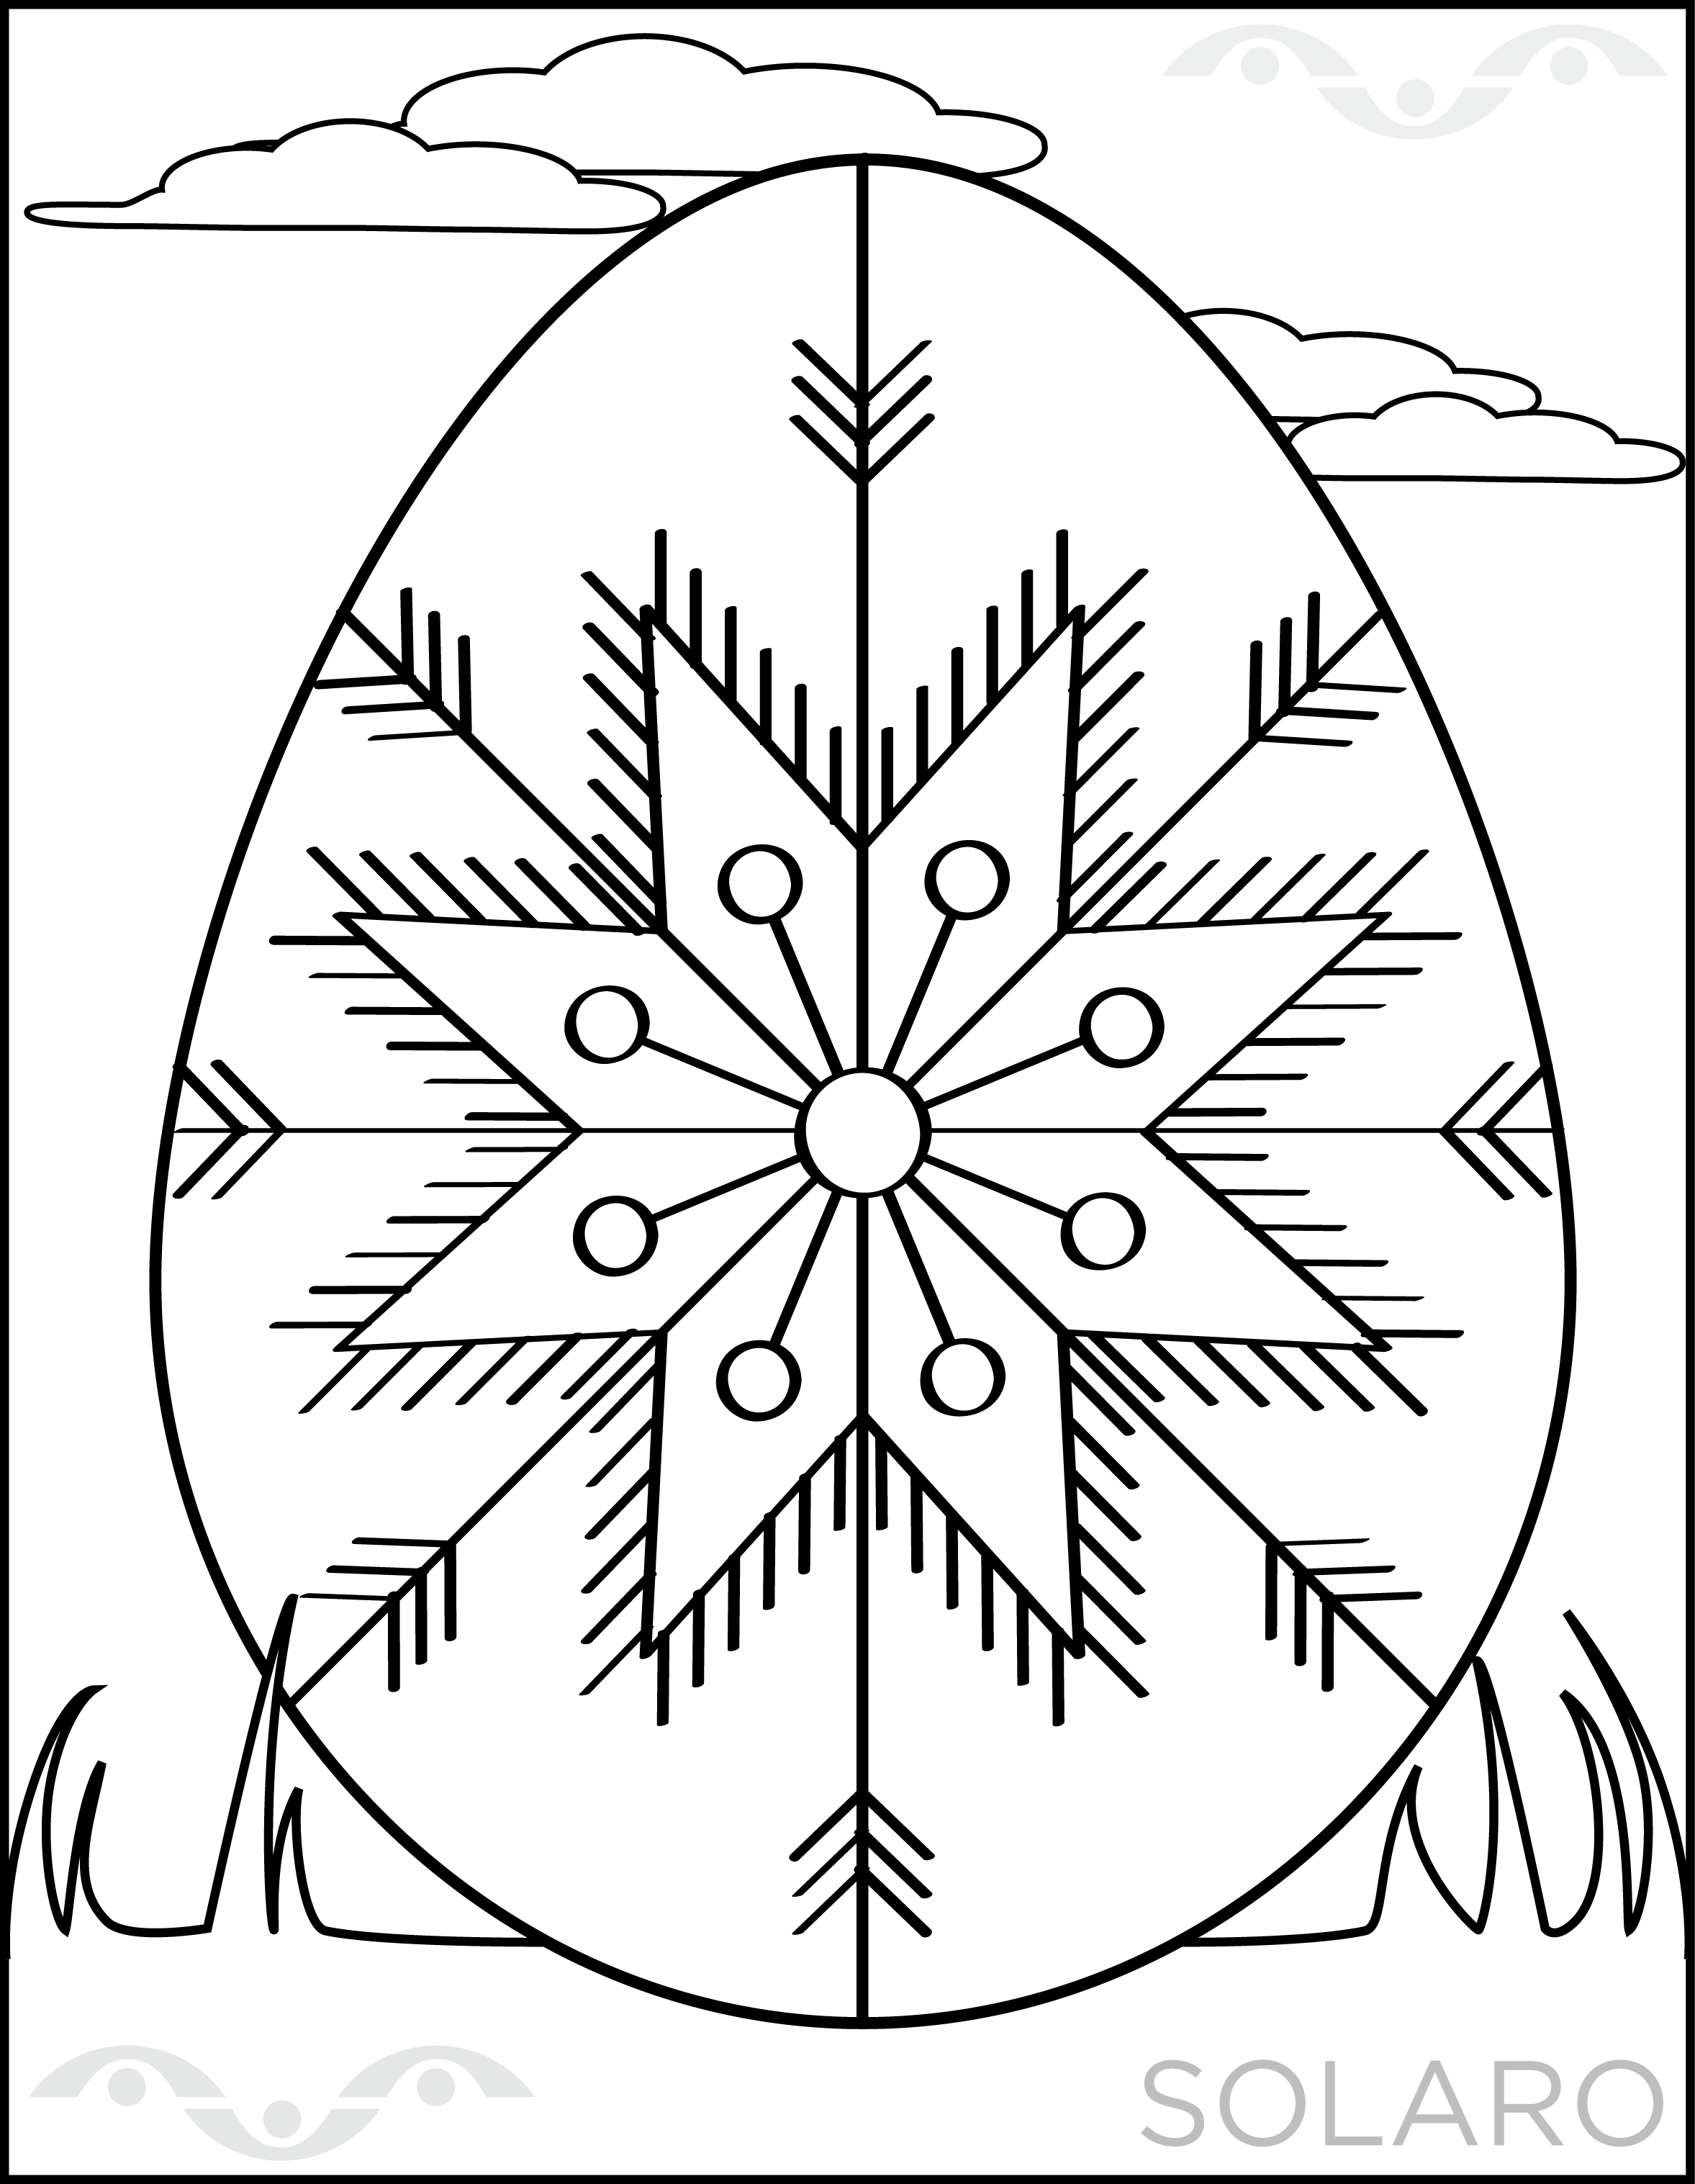 Bored Kids On Spring Break Still Stuck In Class Solaro Pysanky Eggs Pattern Easter Egg Coloring Pages Ukrainian Easter Eggs